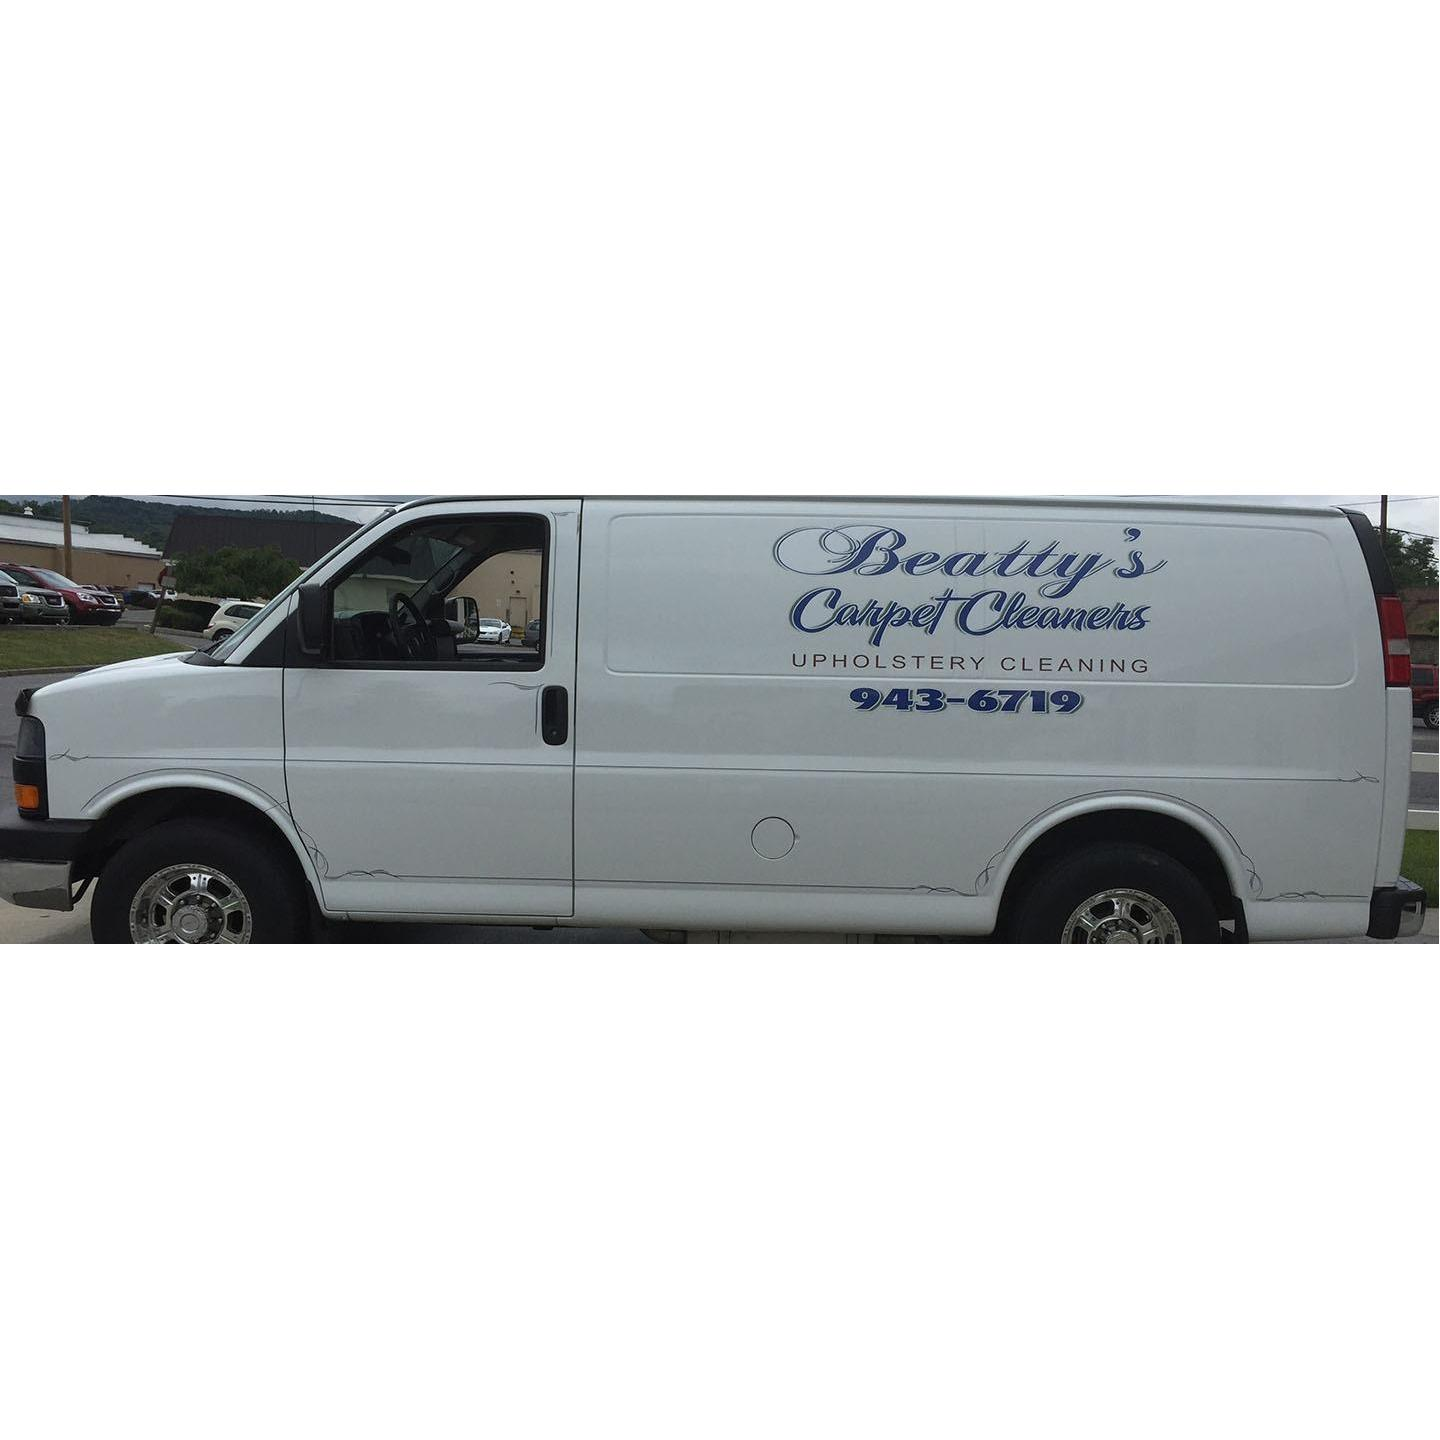 Beatty's Carpet Cleaners